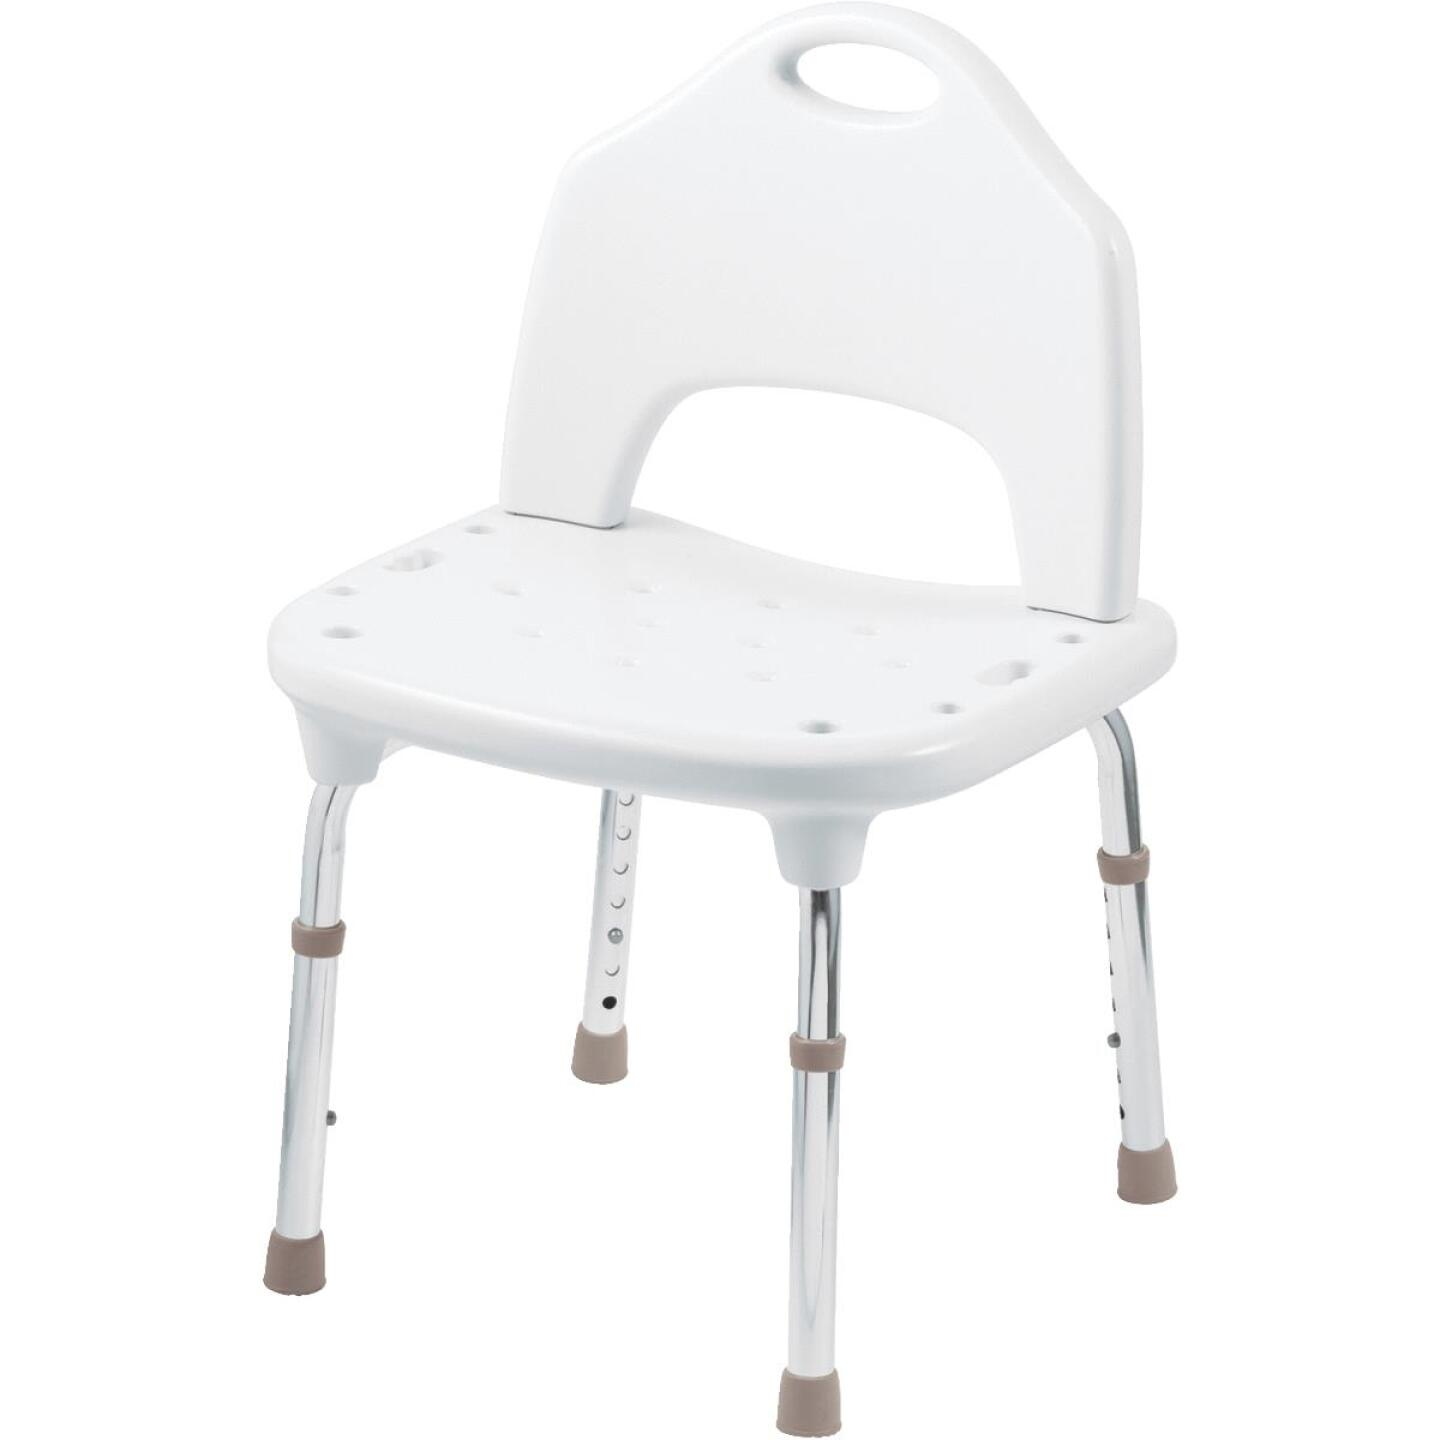 Moen Home Care 400 Lb. White Adjustable Shower & Tub Seat Image 1